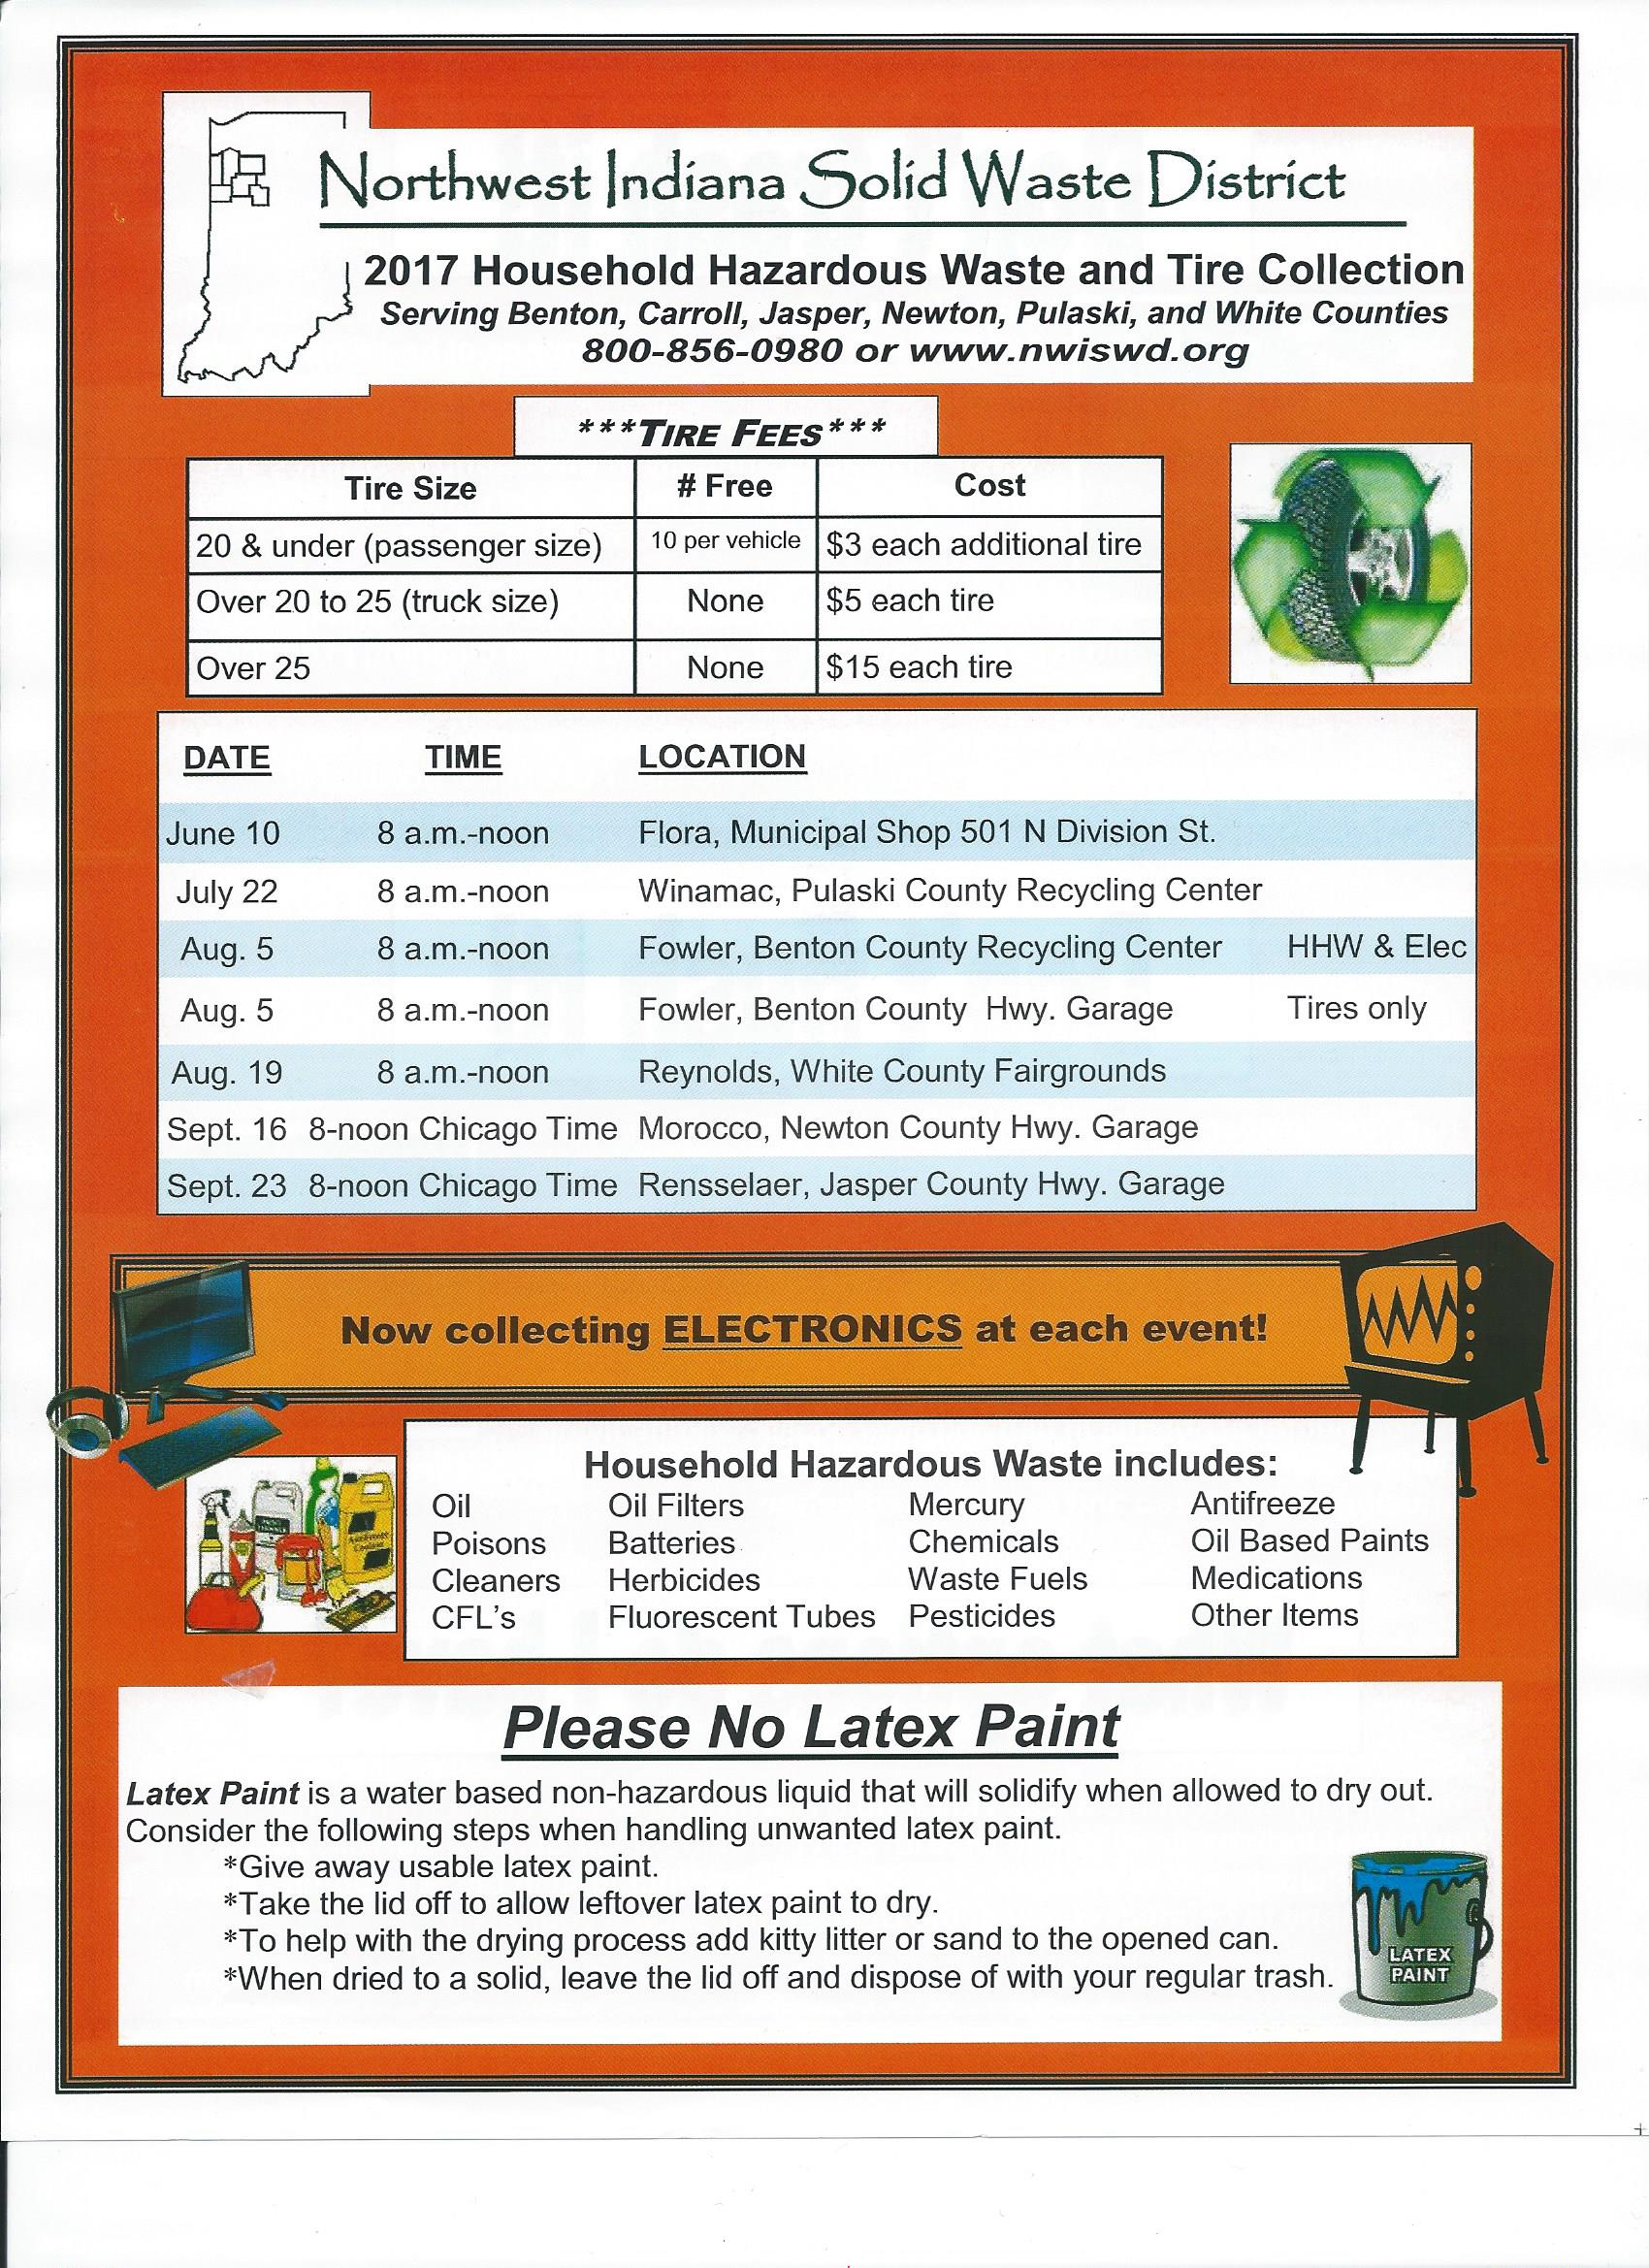 2017 Household Hazardous Waste and Tire Collection June 10 in